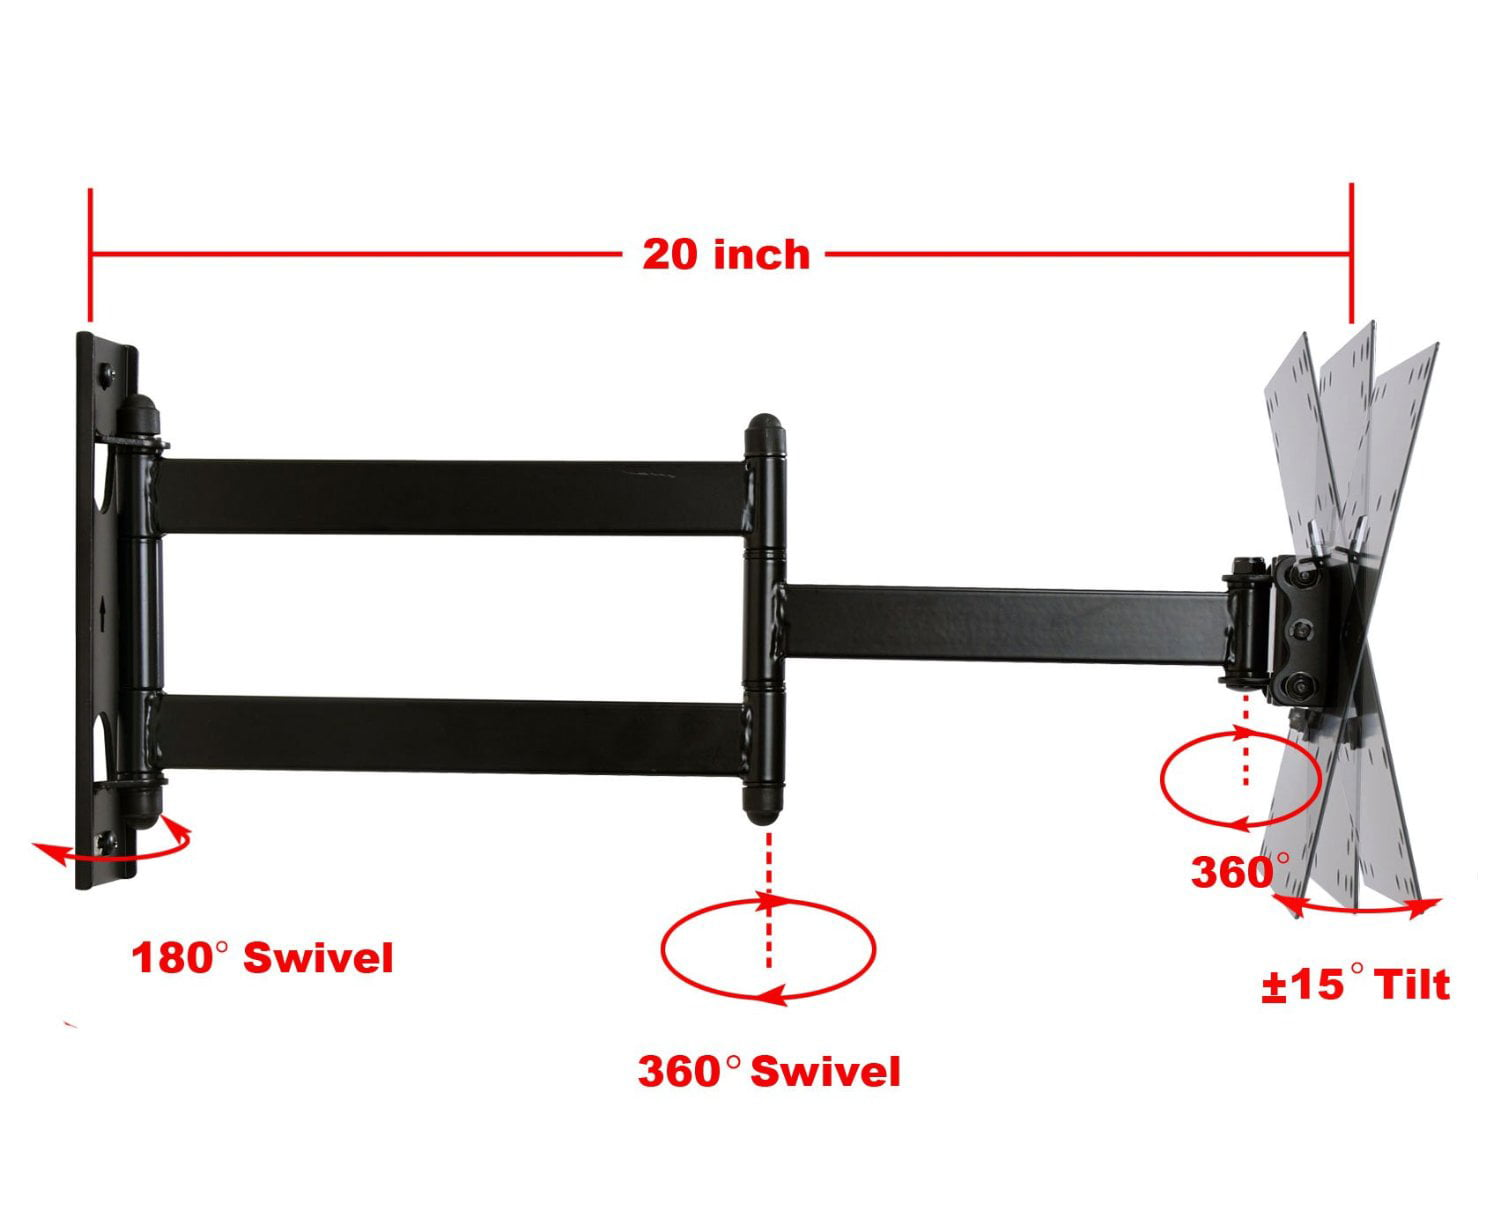 Single stud tv wall mount - Videosecu Tilt Swivel Tv Wall Mount For 22 40 Inch Full Motion Rca Sceptre Toshiba Insignia Lcd Led Hdtv Heavy Duty 3kb Walmart Com